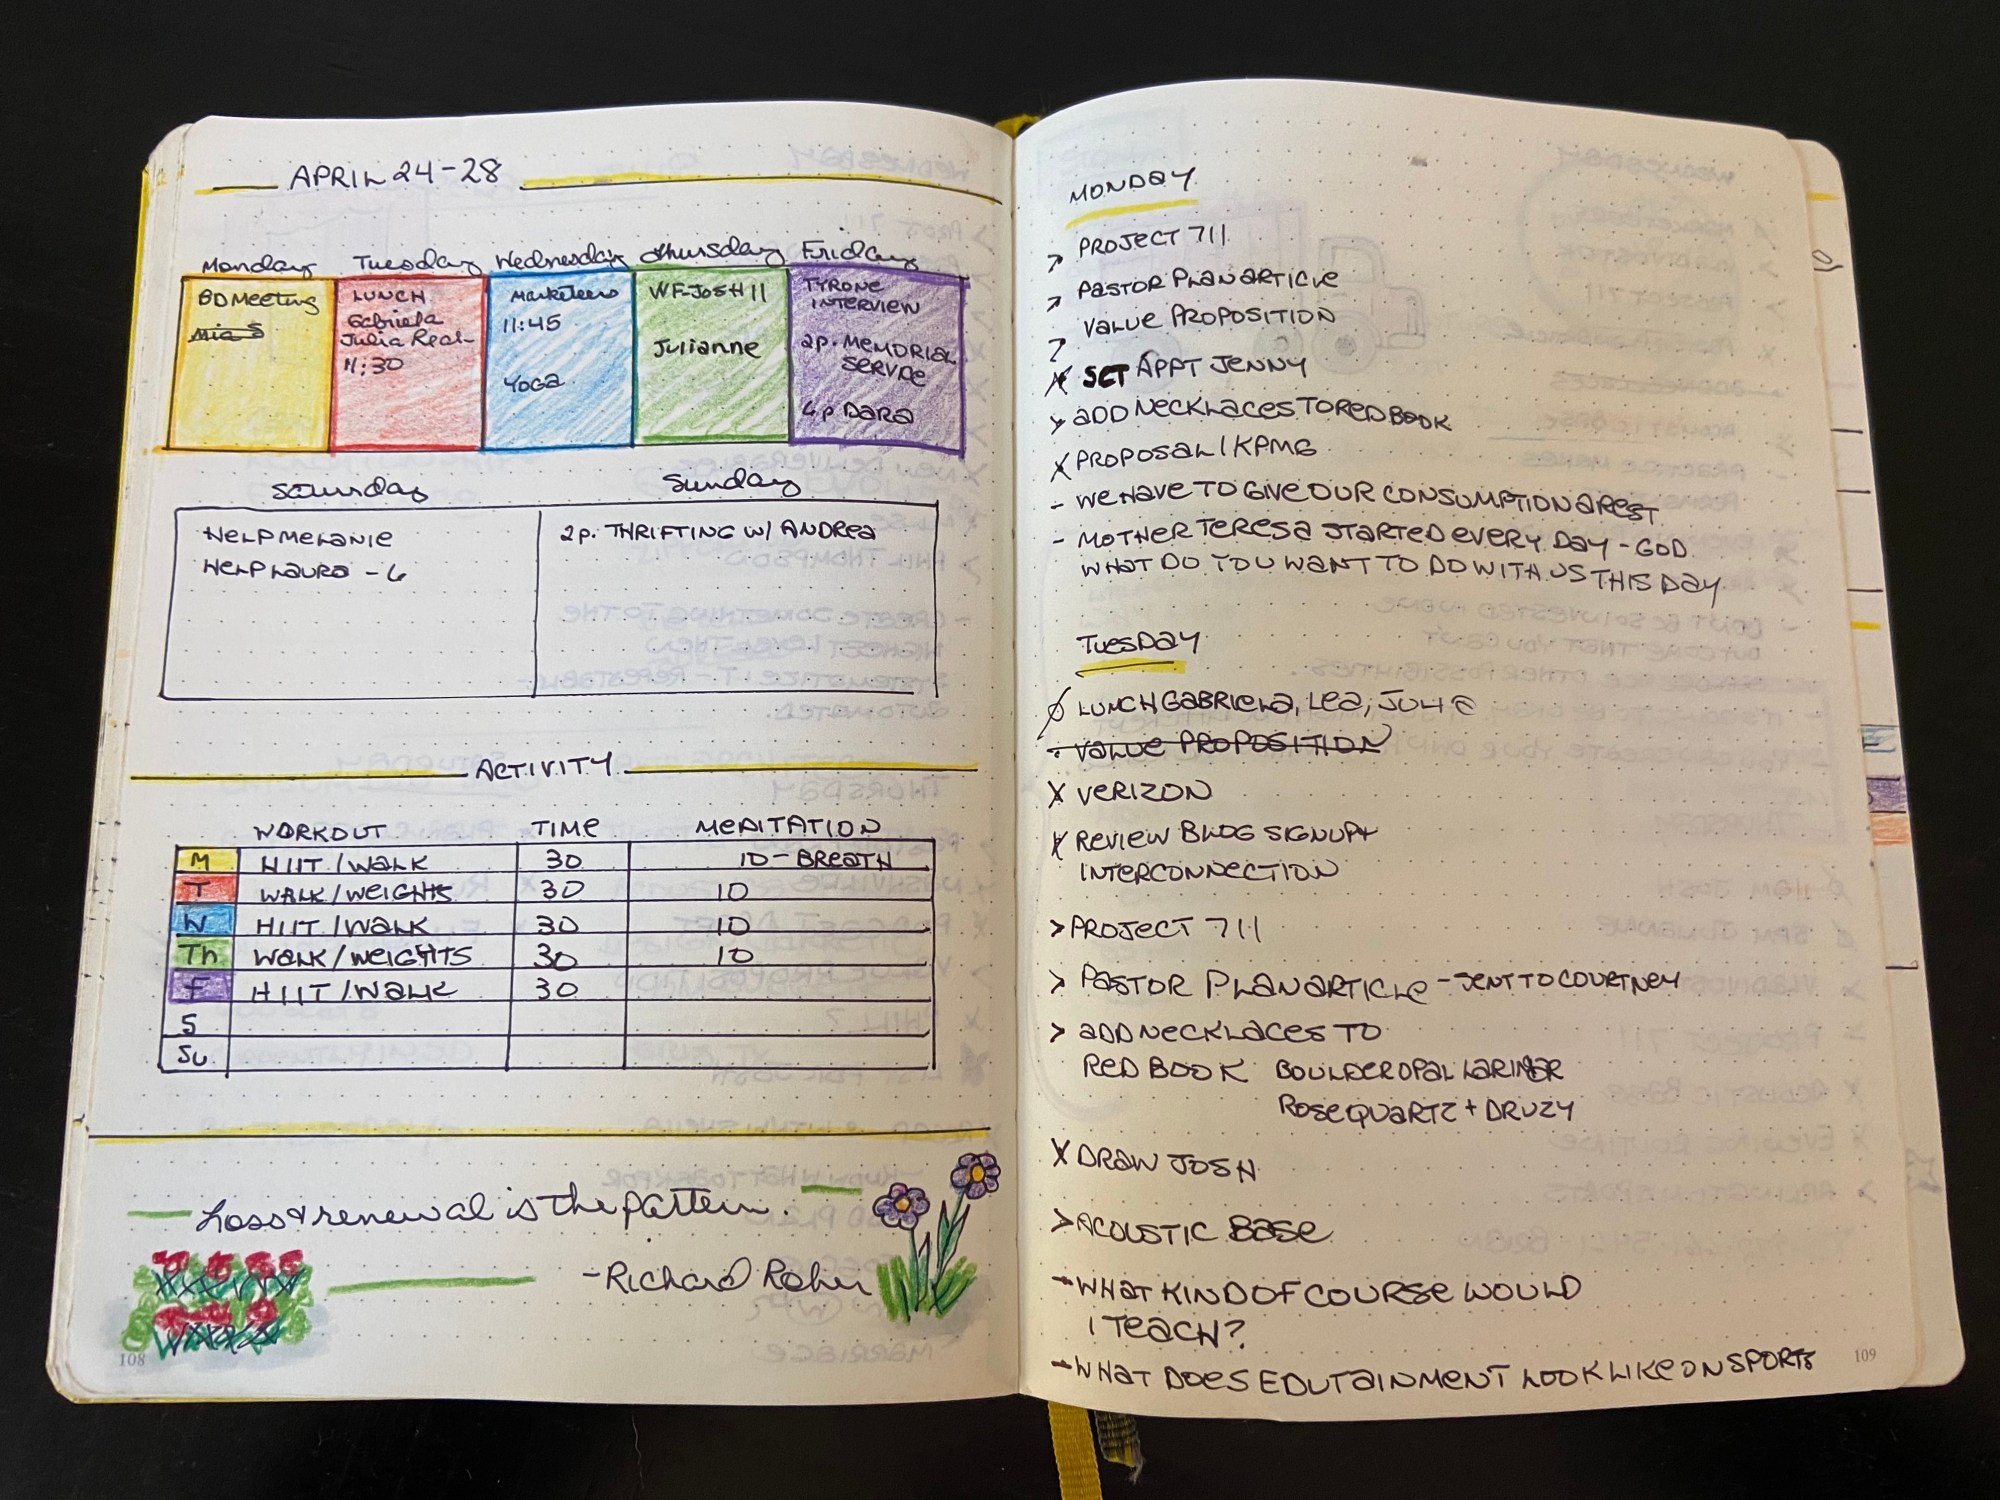 Bullet journal spread that contains week plus workout schedule plus daily log